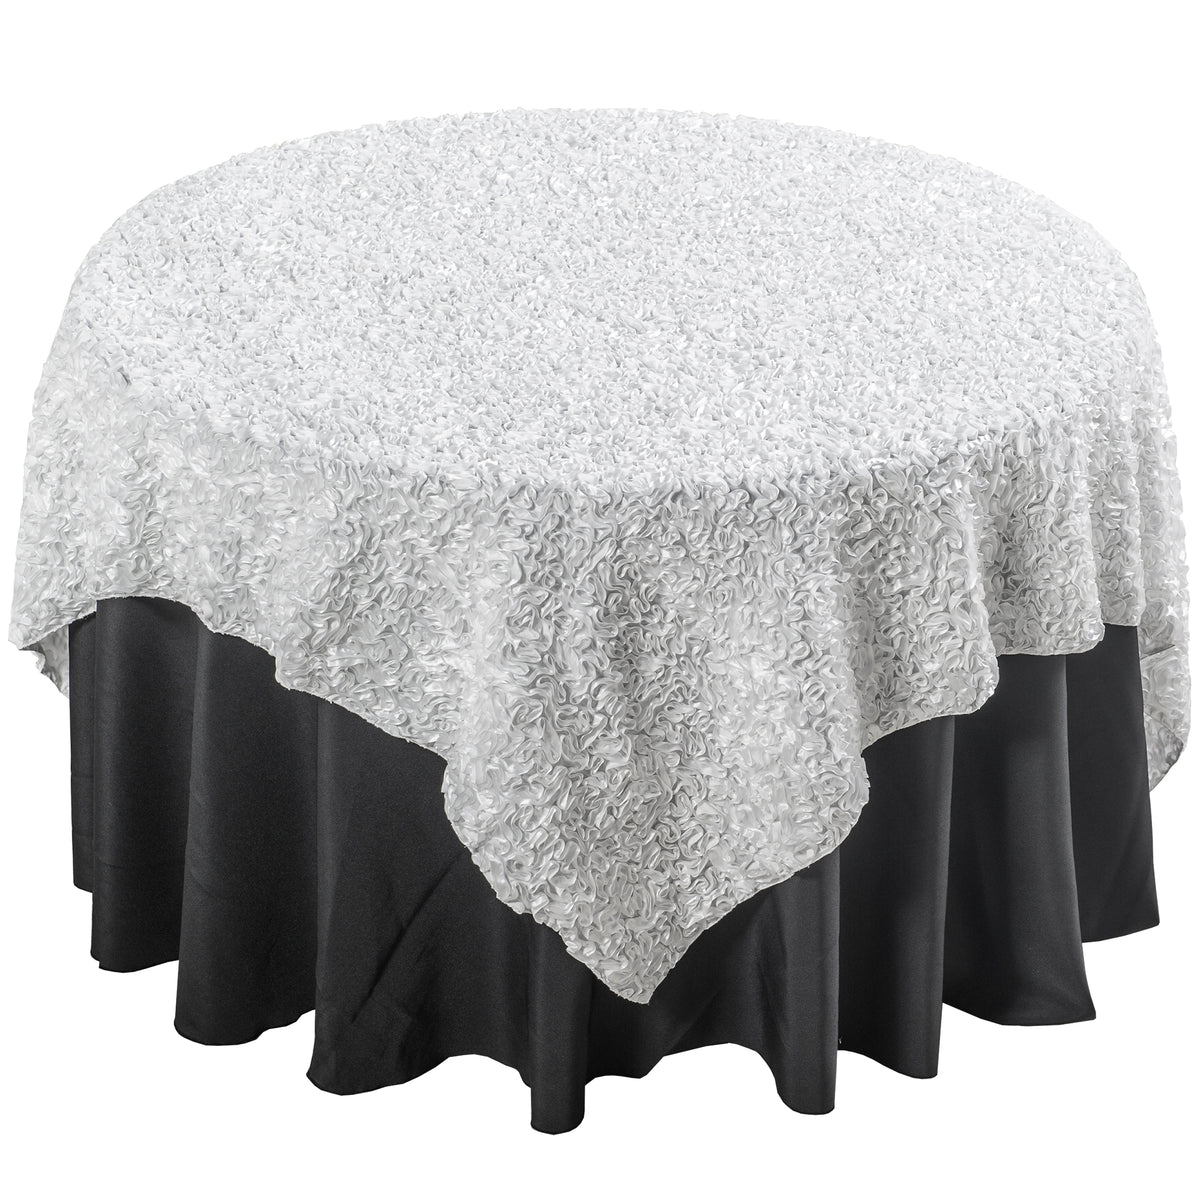 Warm White Wavy Satin Table Overlay